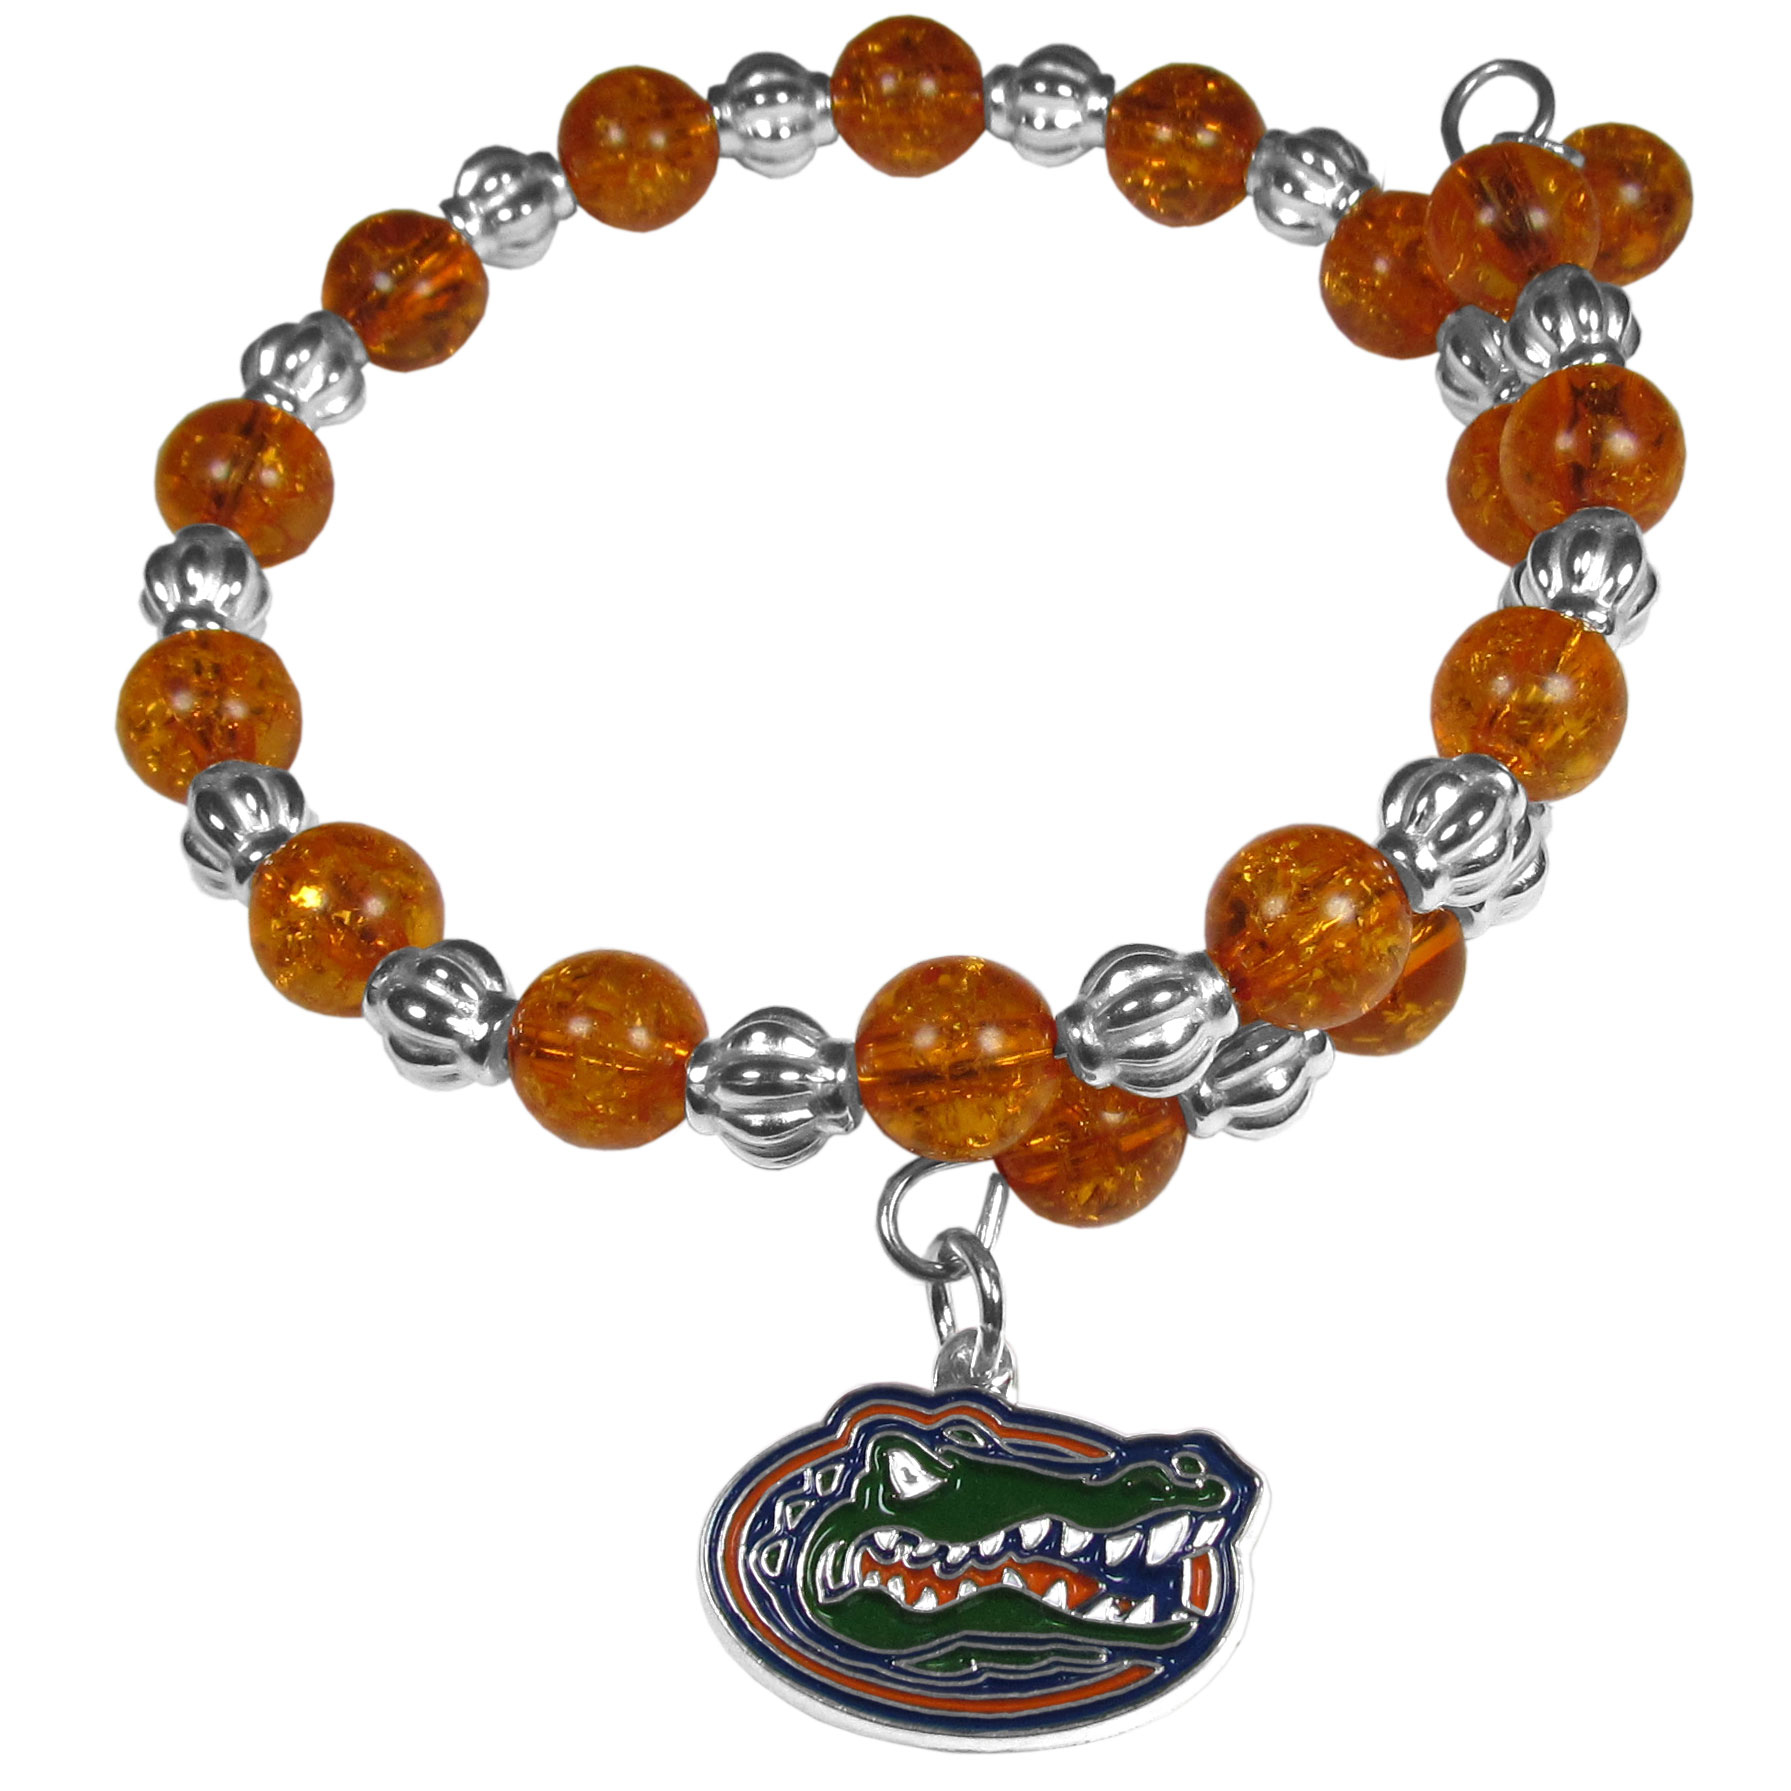 Florida Gators Bead Memory Wire Bracelet - Our Florida Gators memory wire bead bracelet is trendy way to show off your love of the game. The double wrap bracelet is completely covered in 7.5 mm crystals that are broken up with silvertoned beads creating a designer look with a sporty twist. The bracelet features a fully cast, metal team charm that has expertly enameled team colors. This fashion jewelry piece is a must-have for the die-hard fan that chic look that can dress up any outfit.